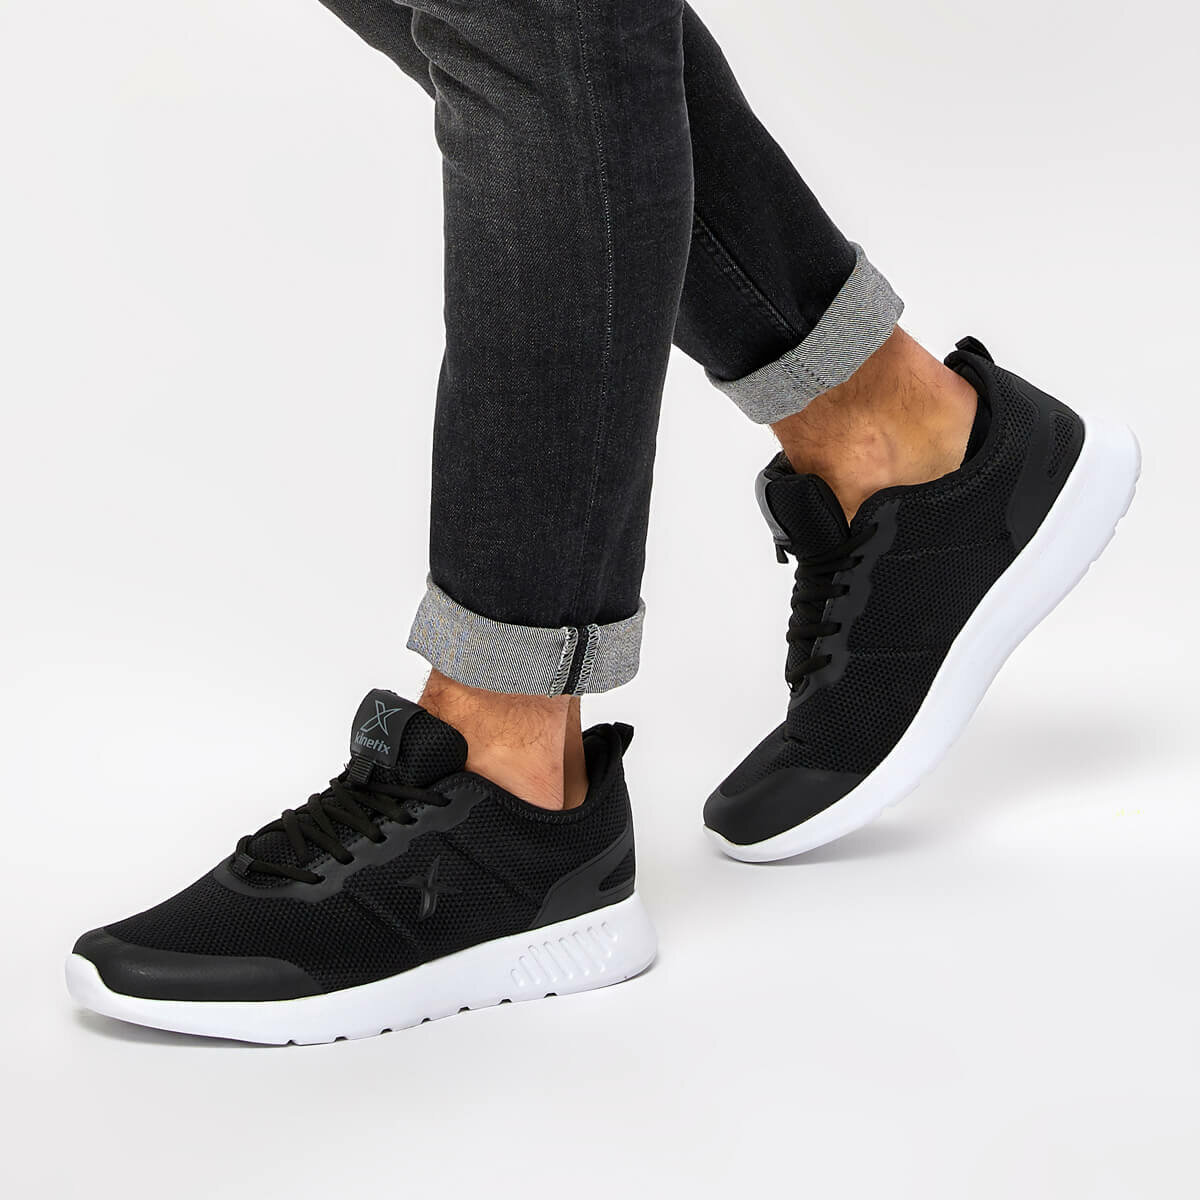 FLO LAZER M Black Men 'S Sneaker Shoes KINETIX